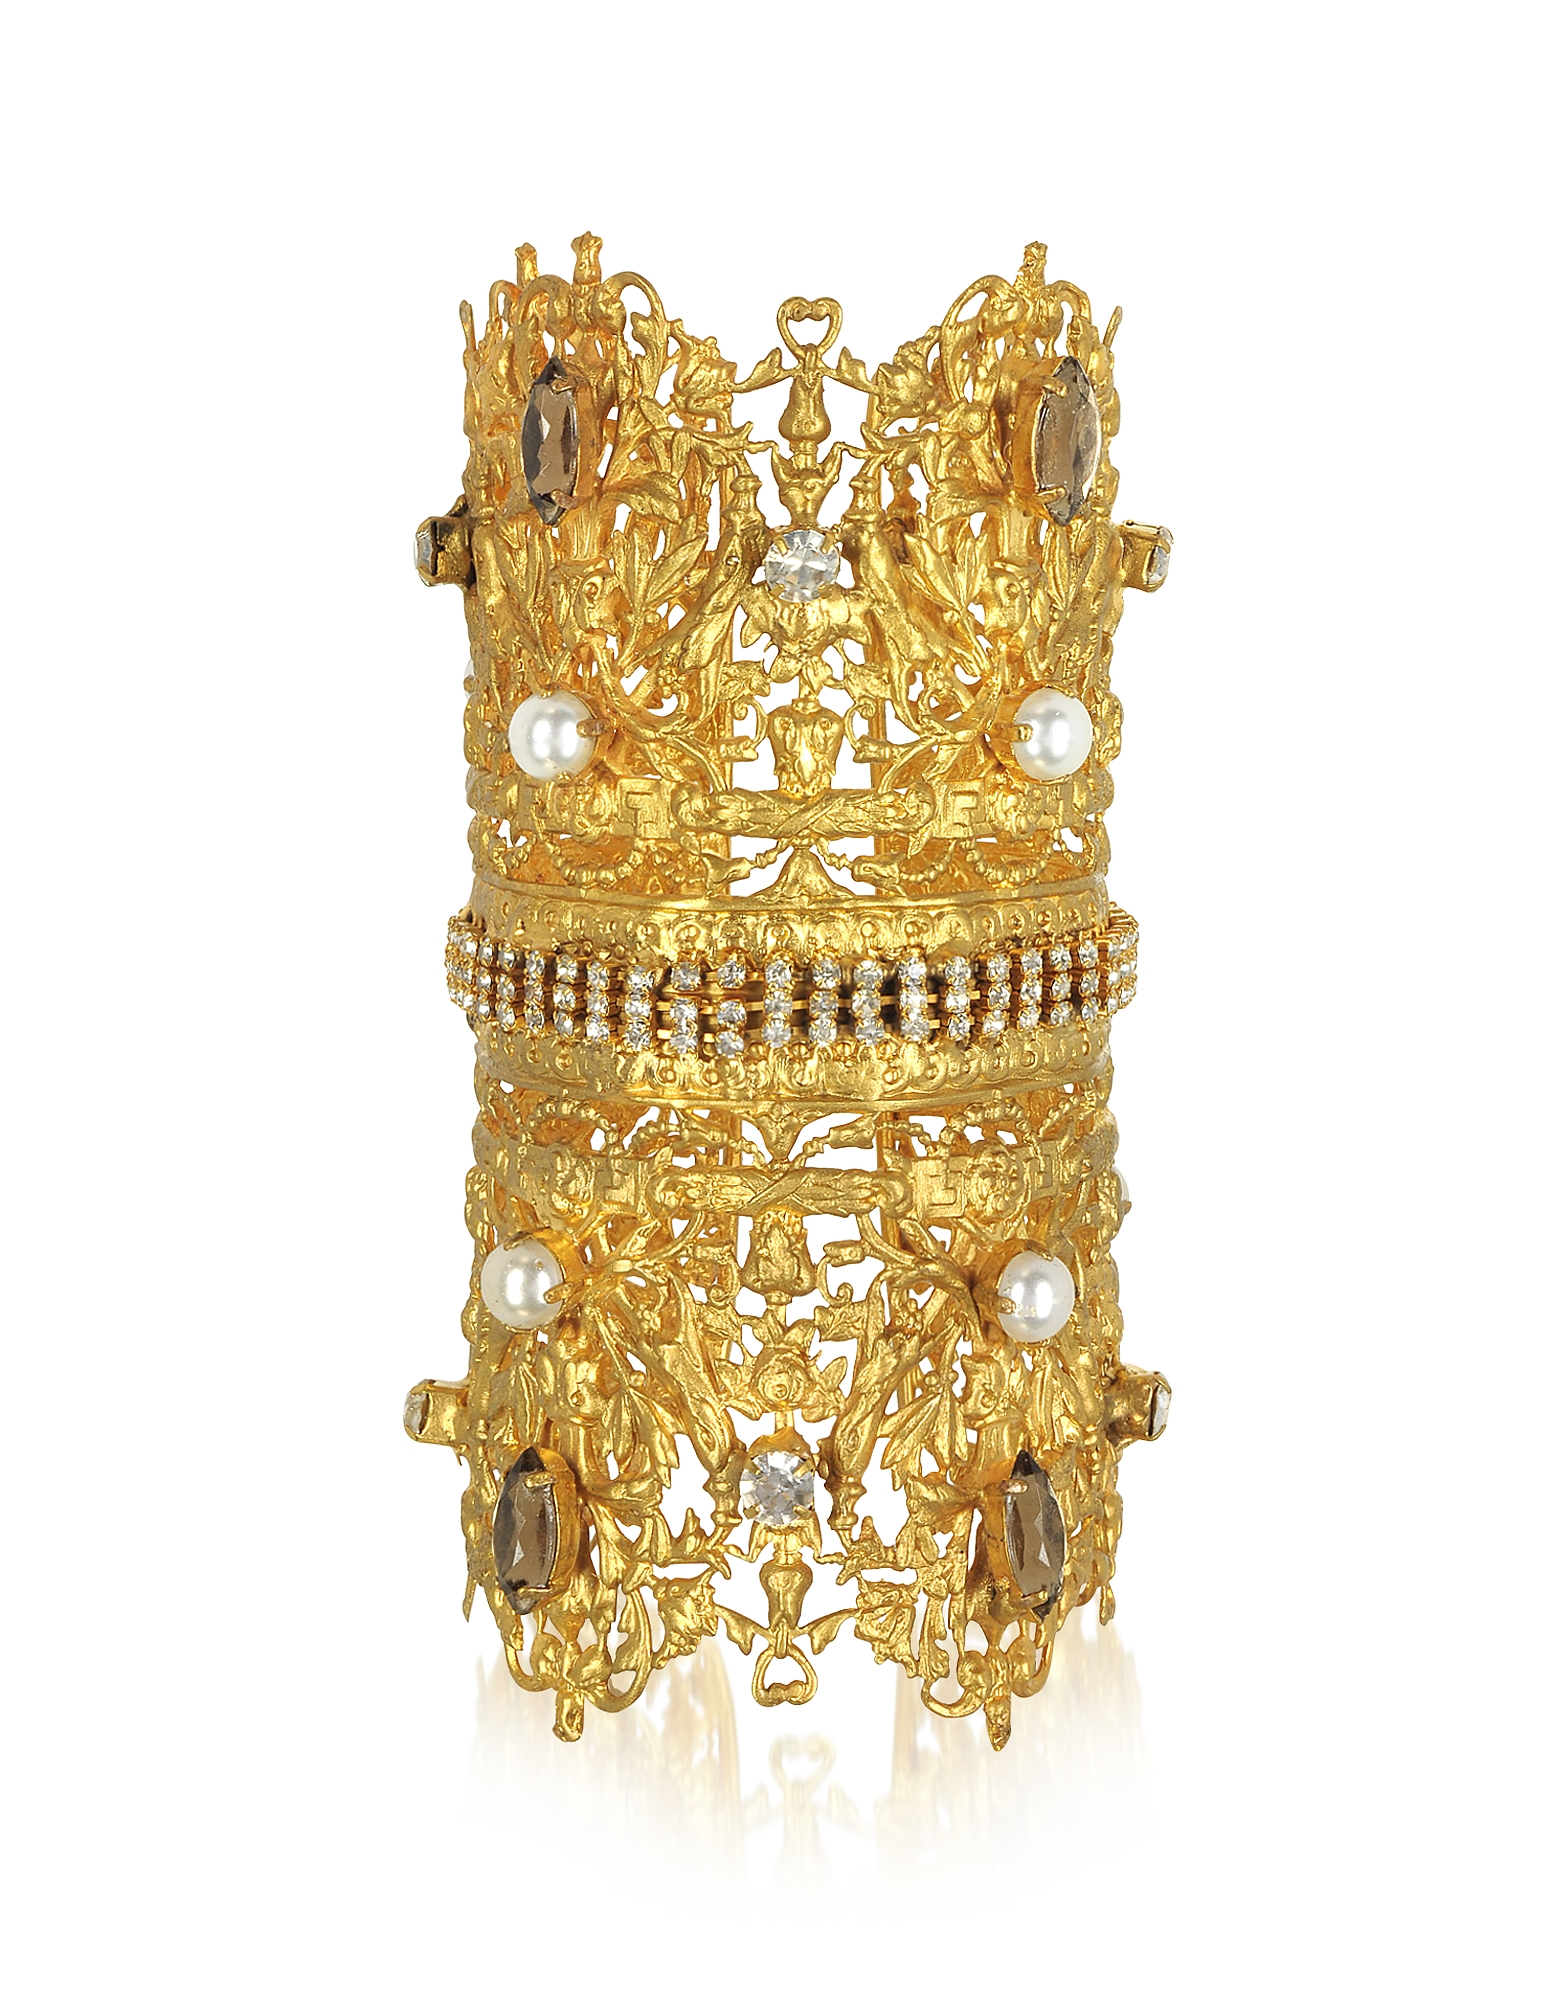 Sara Bencini Designer Bracelets, Golden Brass Double Crown Cuff Bracelet w/Glass Pearls